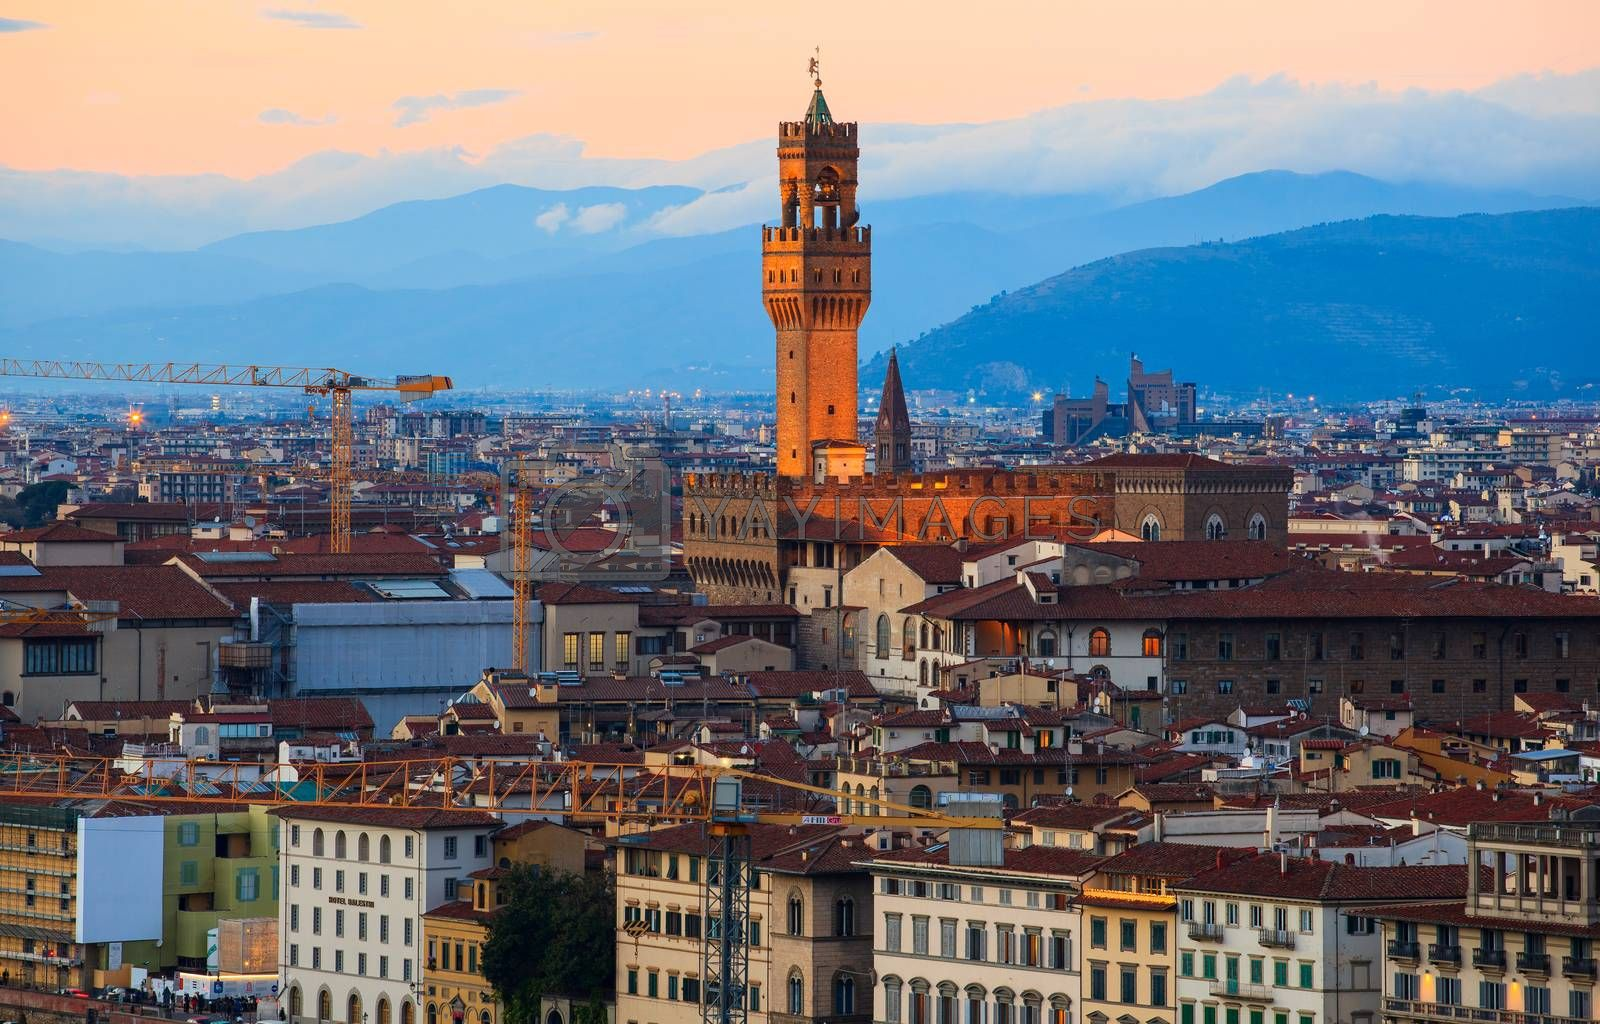 View of Florence - Firenze. Italy